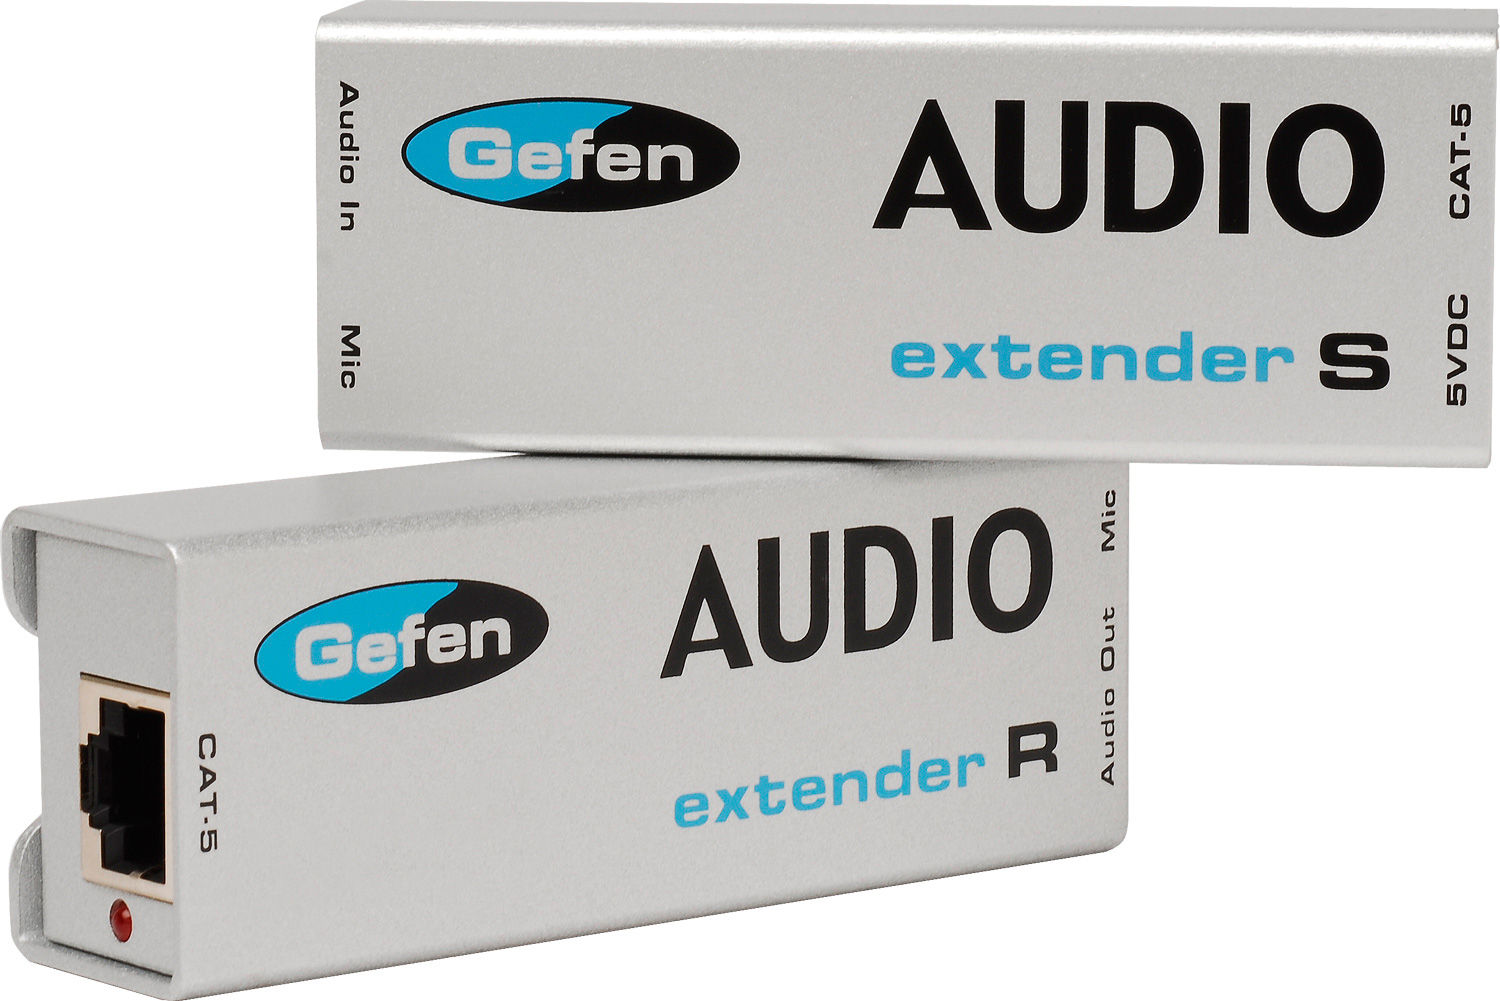 Gefen Ext Aud 1000 Analog Audio Extender Over Cat 5 Cable